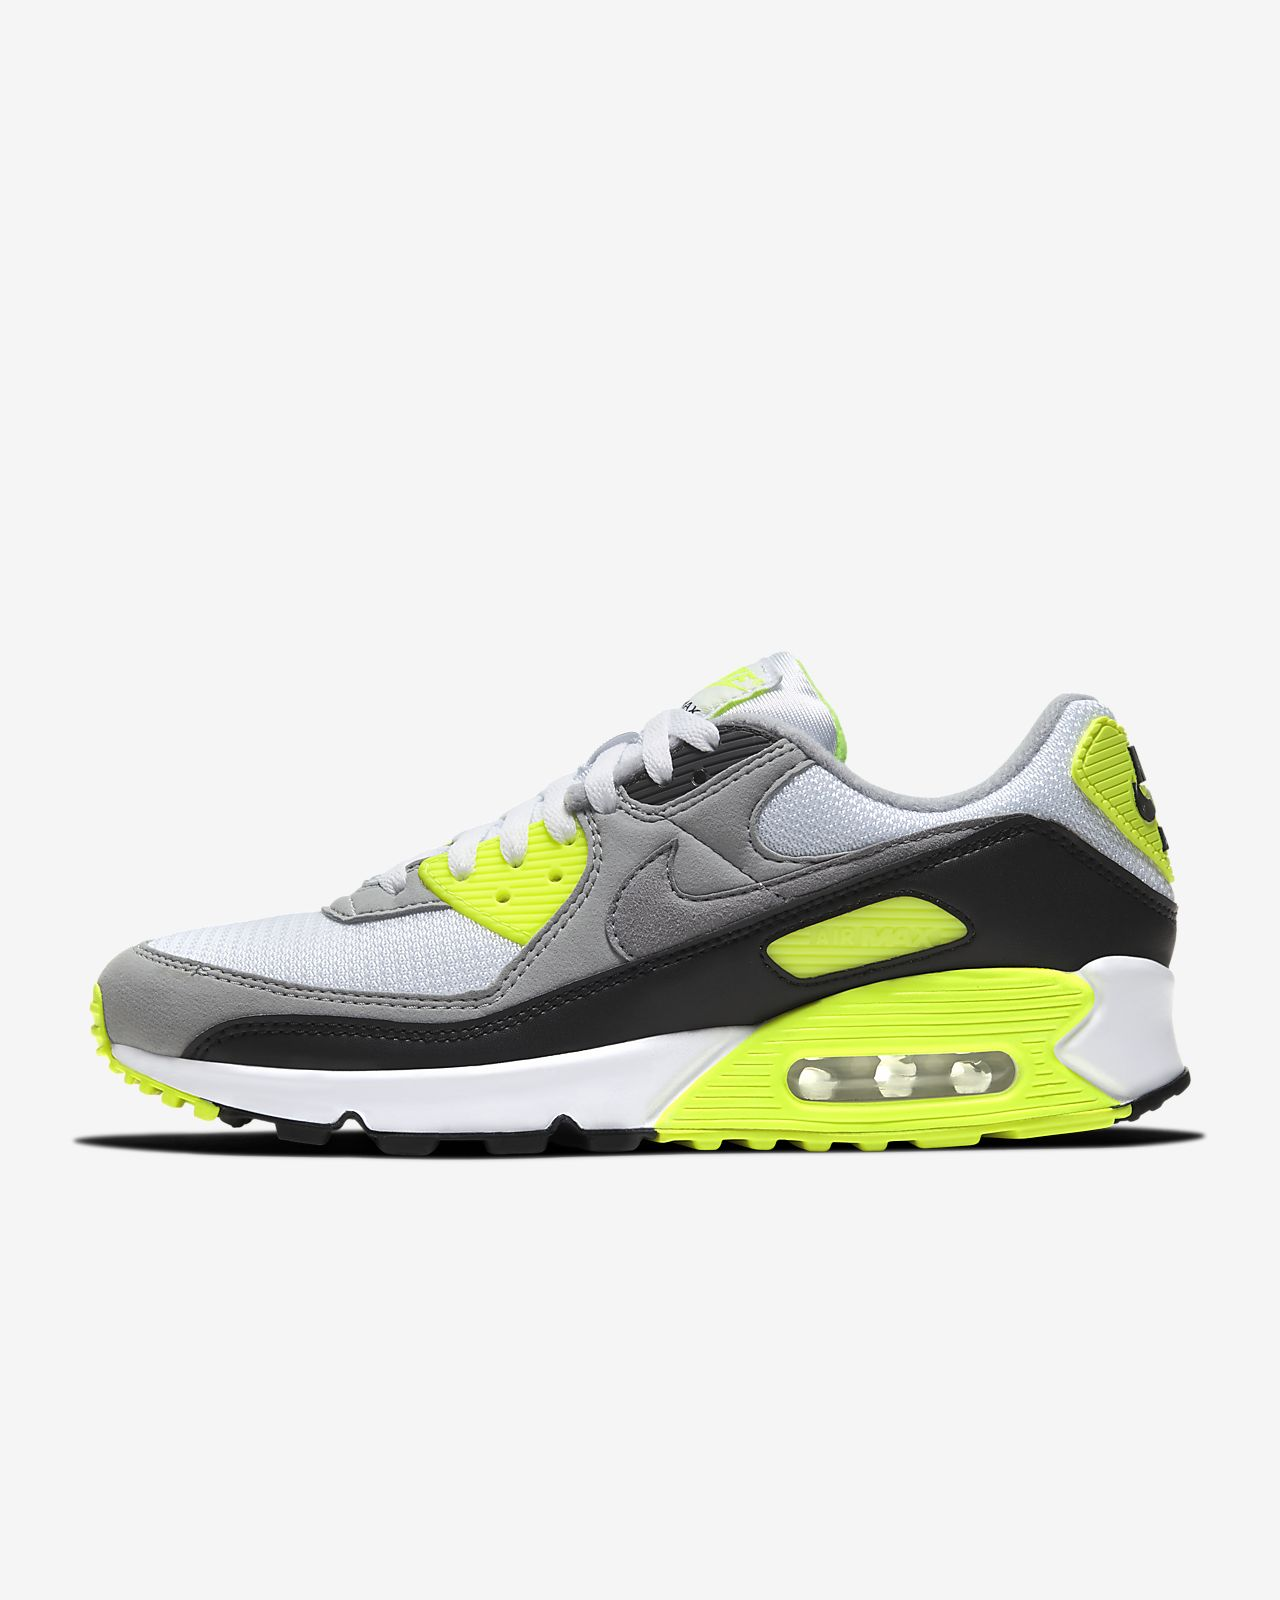 uomo's original nike air max 90